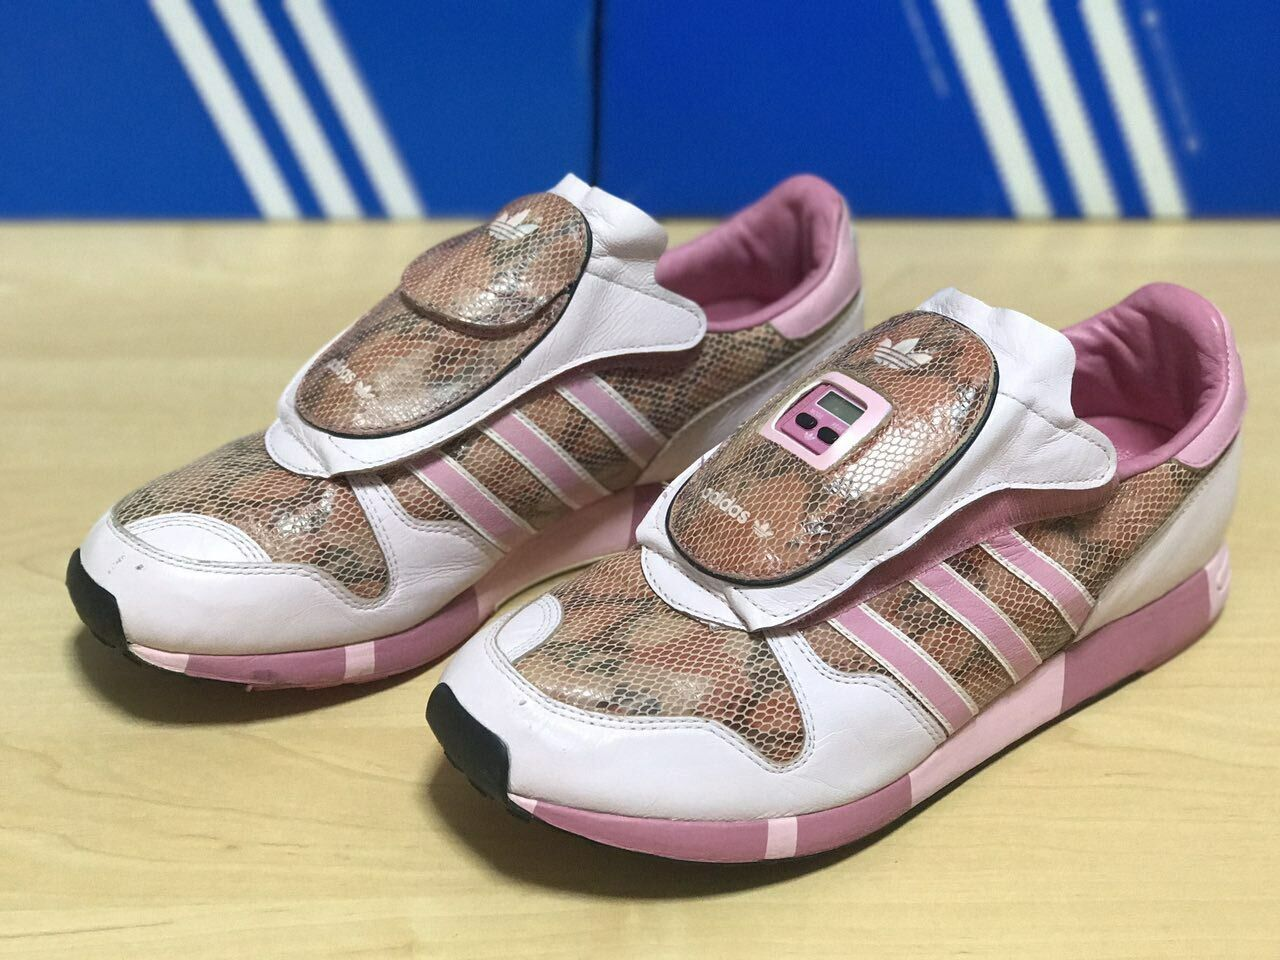 Snake Pink Micropacer Skin Adidas 9.5 US size f970ebcxh43422